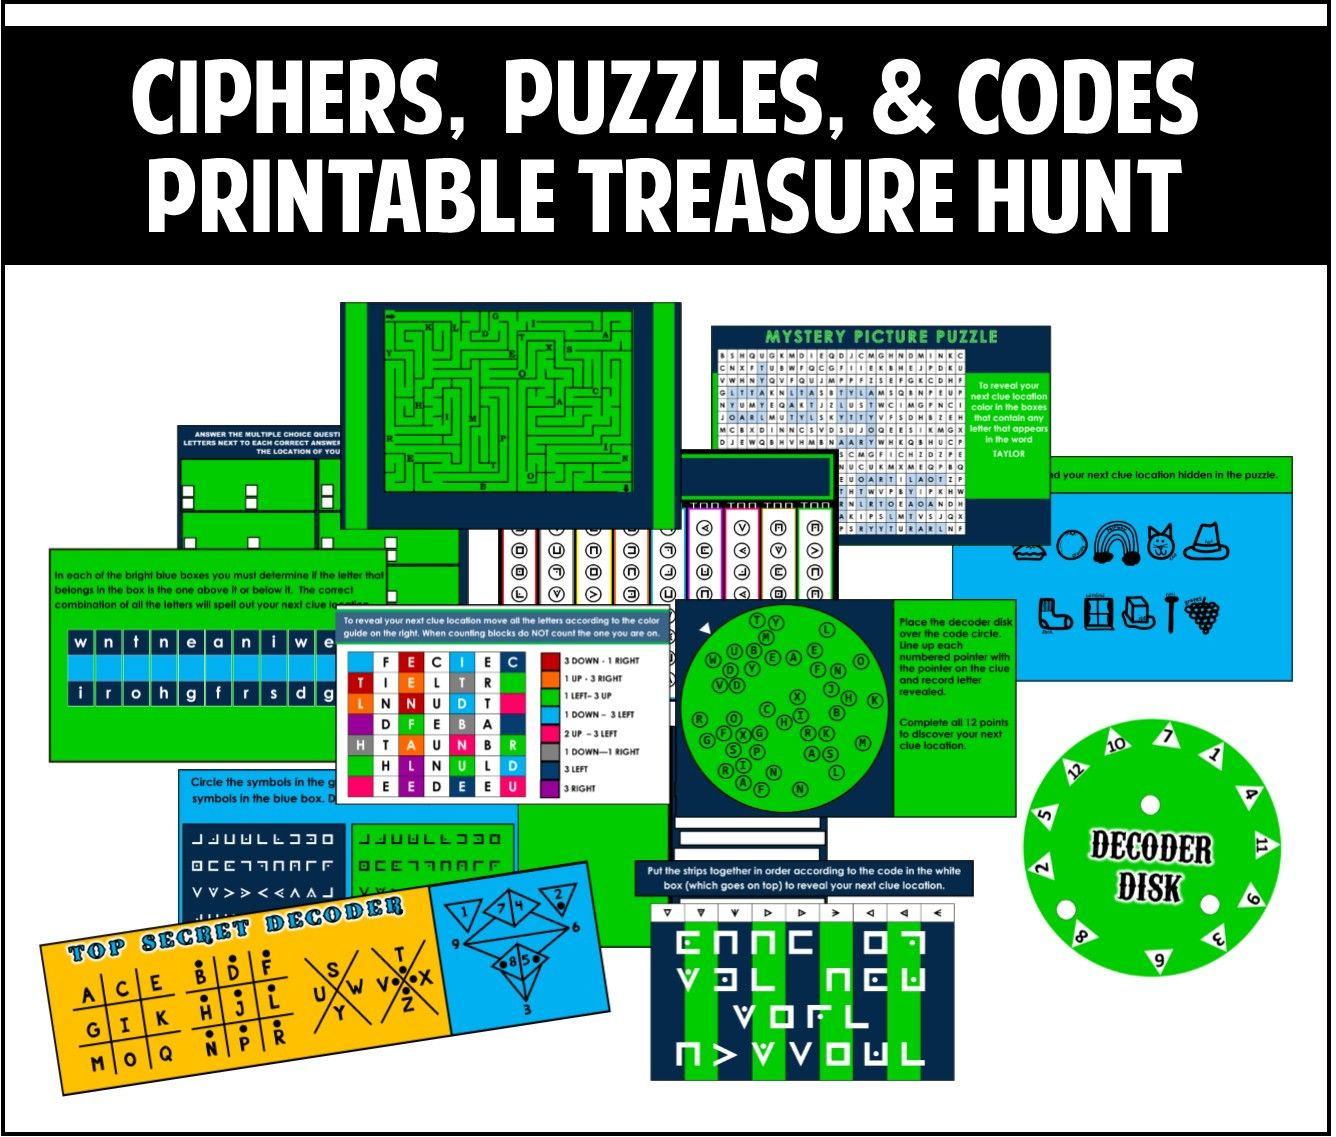 This Printable Treasure Hunt Is All About Ciphers, Puzzles, And - Printable Decoder Puzzles